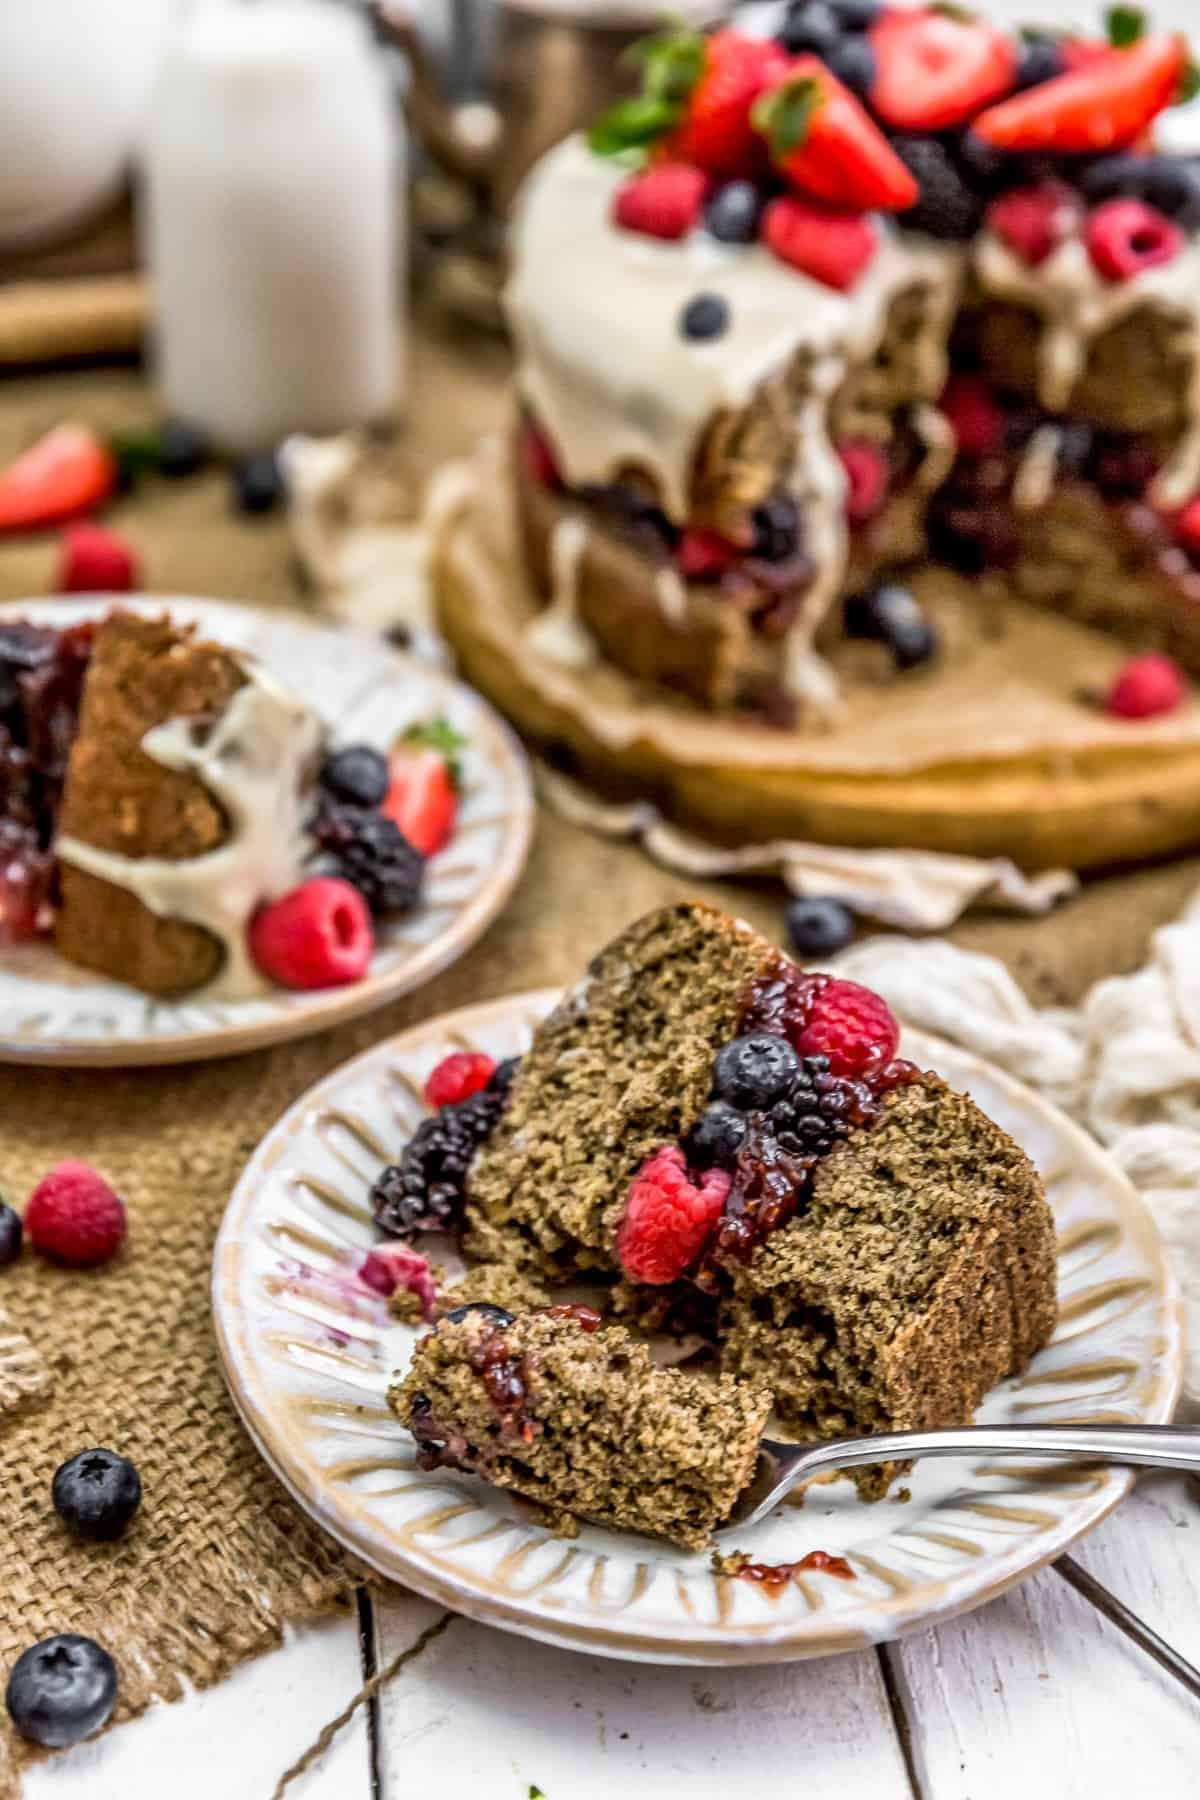 Fork with Healthy Vegan Buckwheat Cake